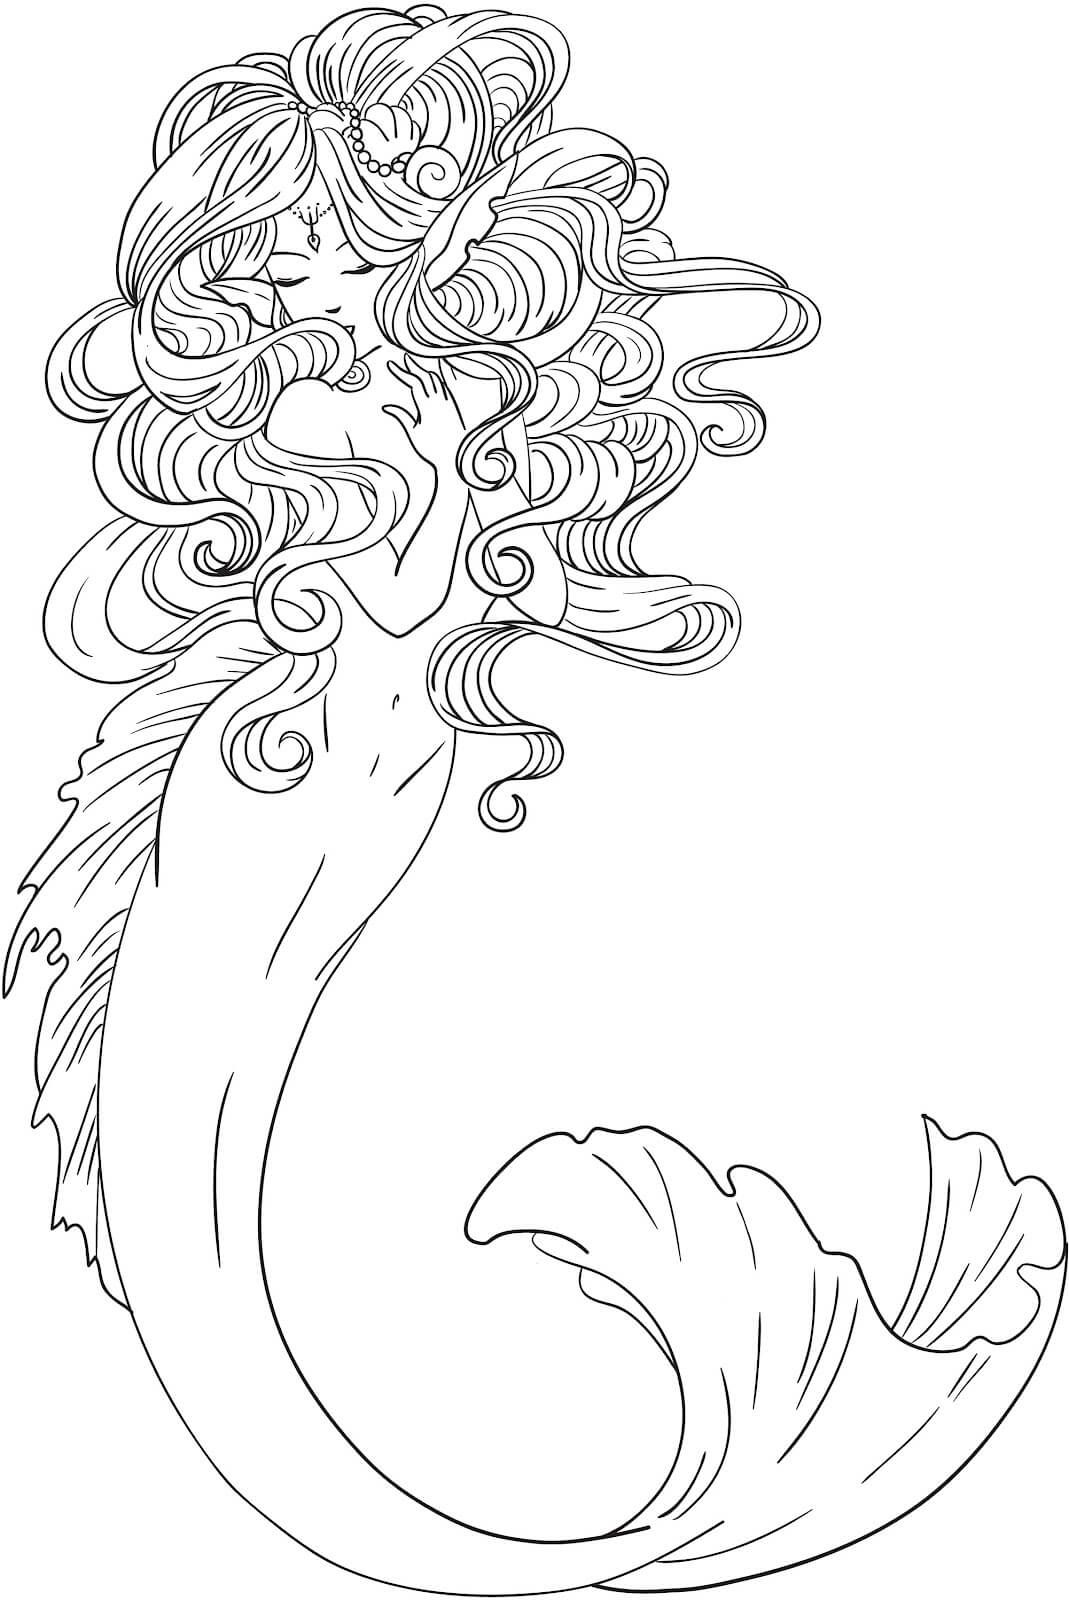 Colorings Co Adult Mermaid Coloring Pages Colorings